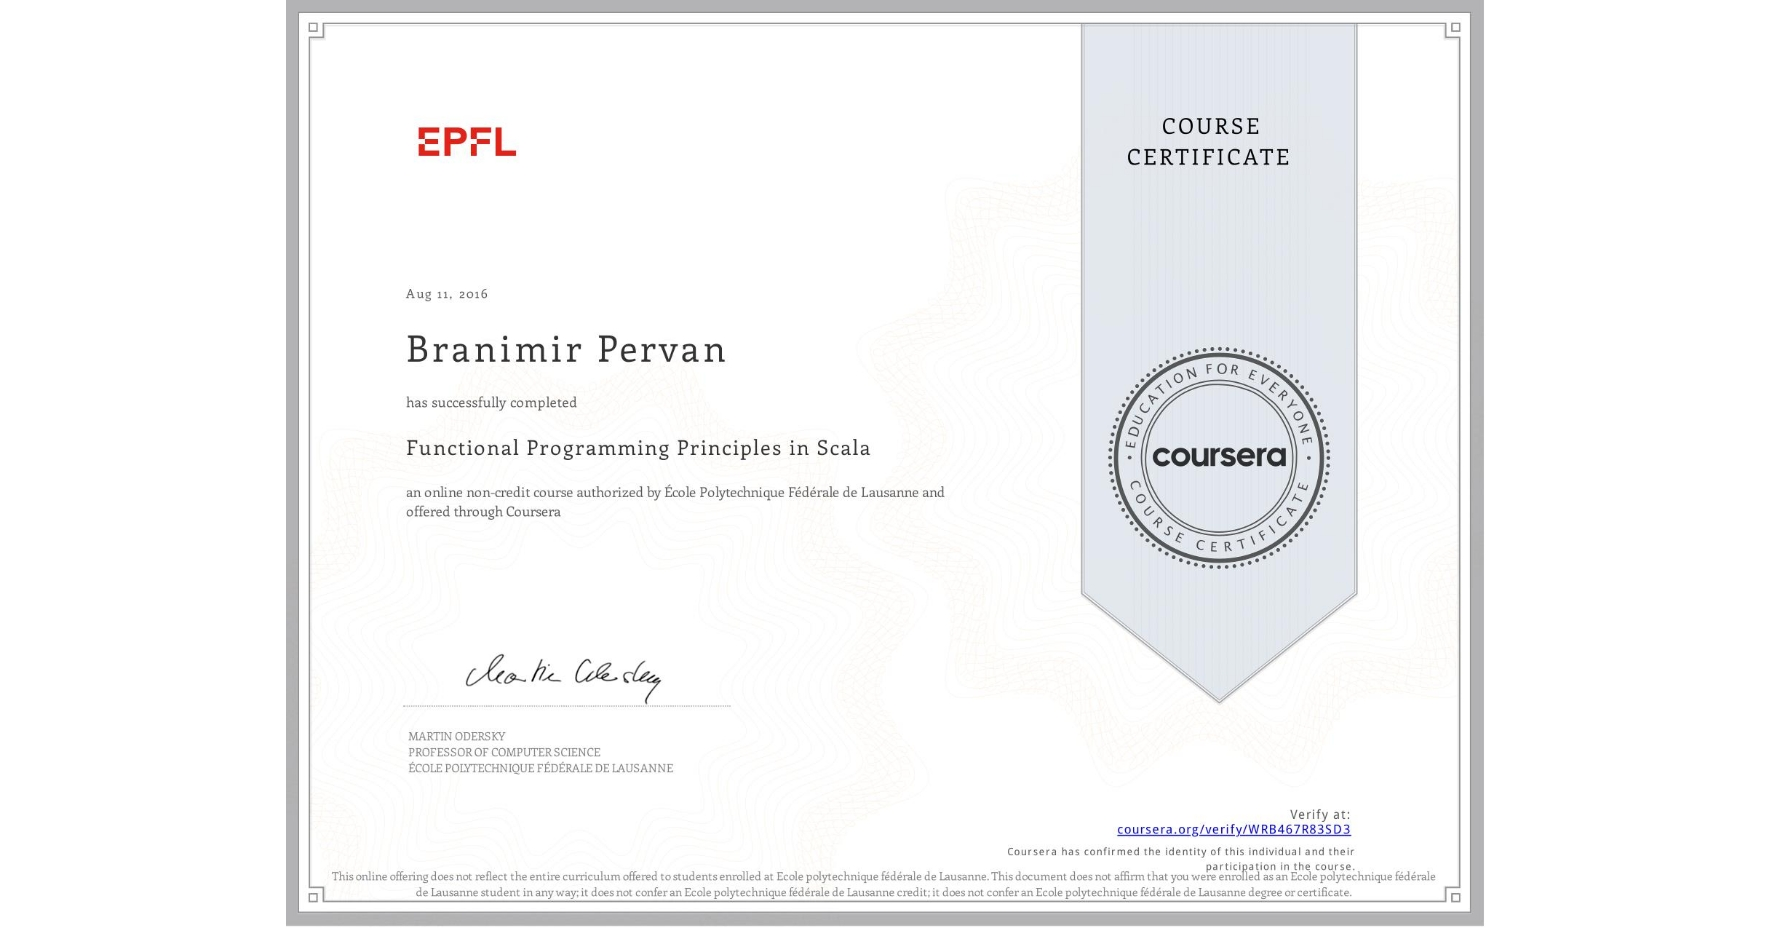 View certificate for Branimir Pervan, Functional Programming Principles in Scala, an online non-credit course authorized by École Polytechnique Fédérale de Lausanne and offered through Coursera